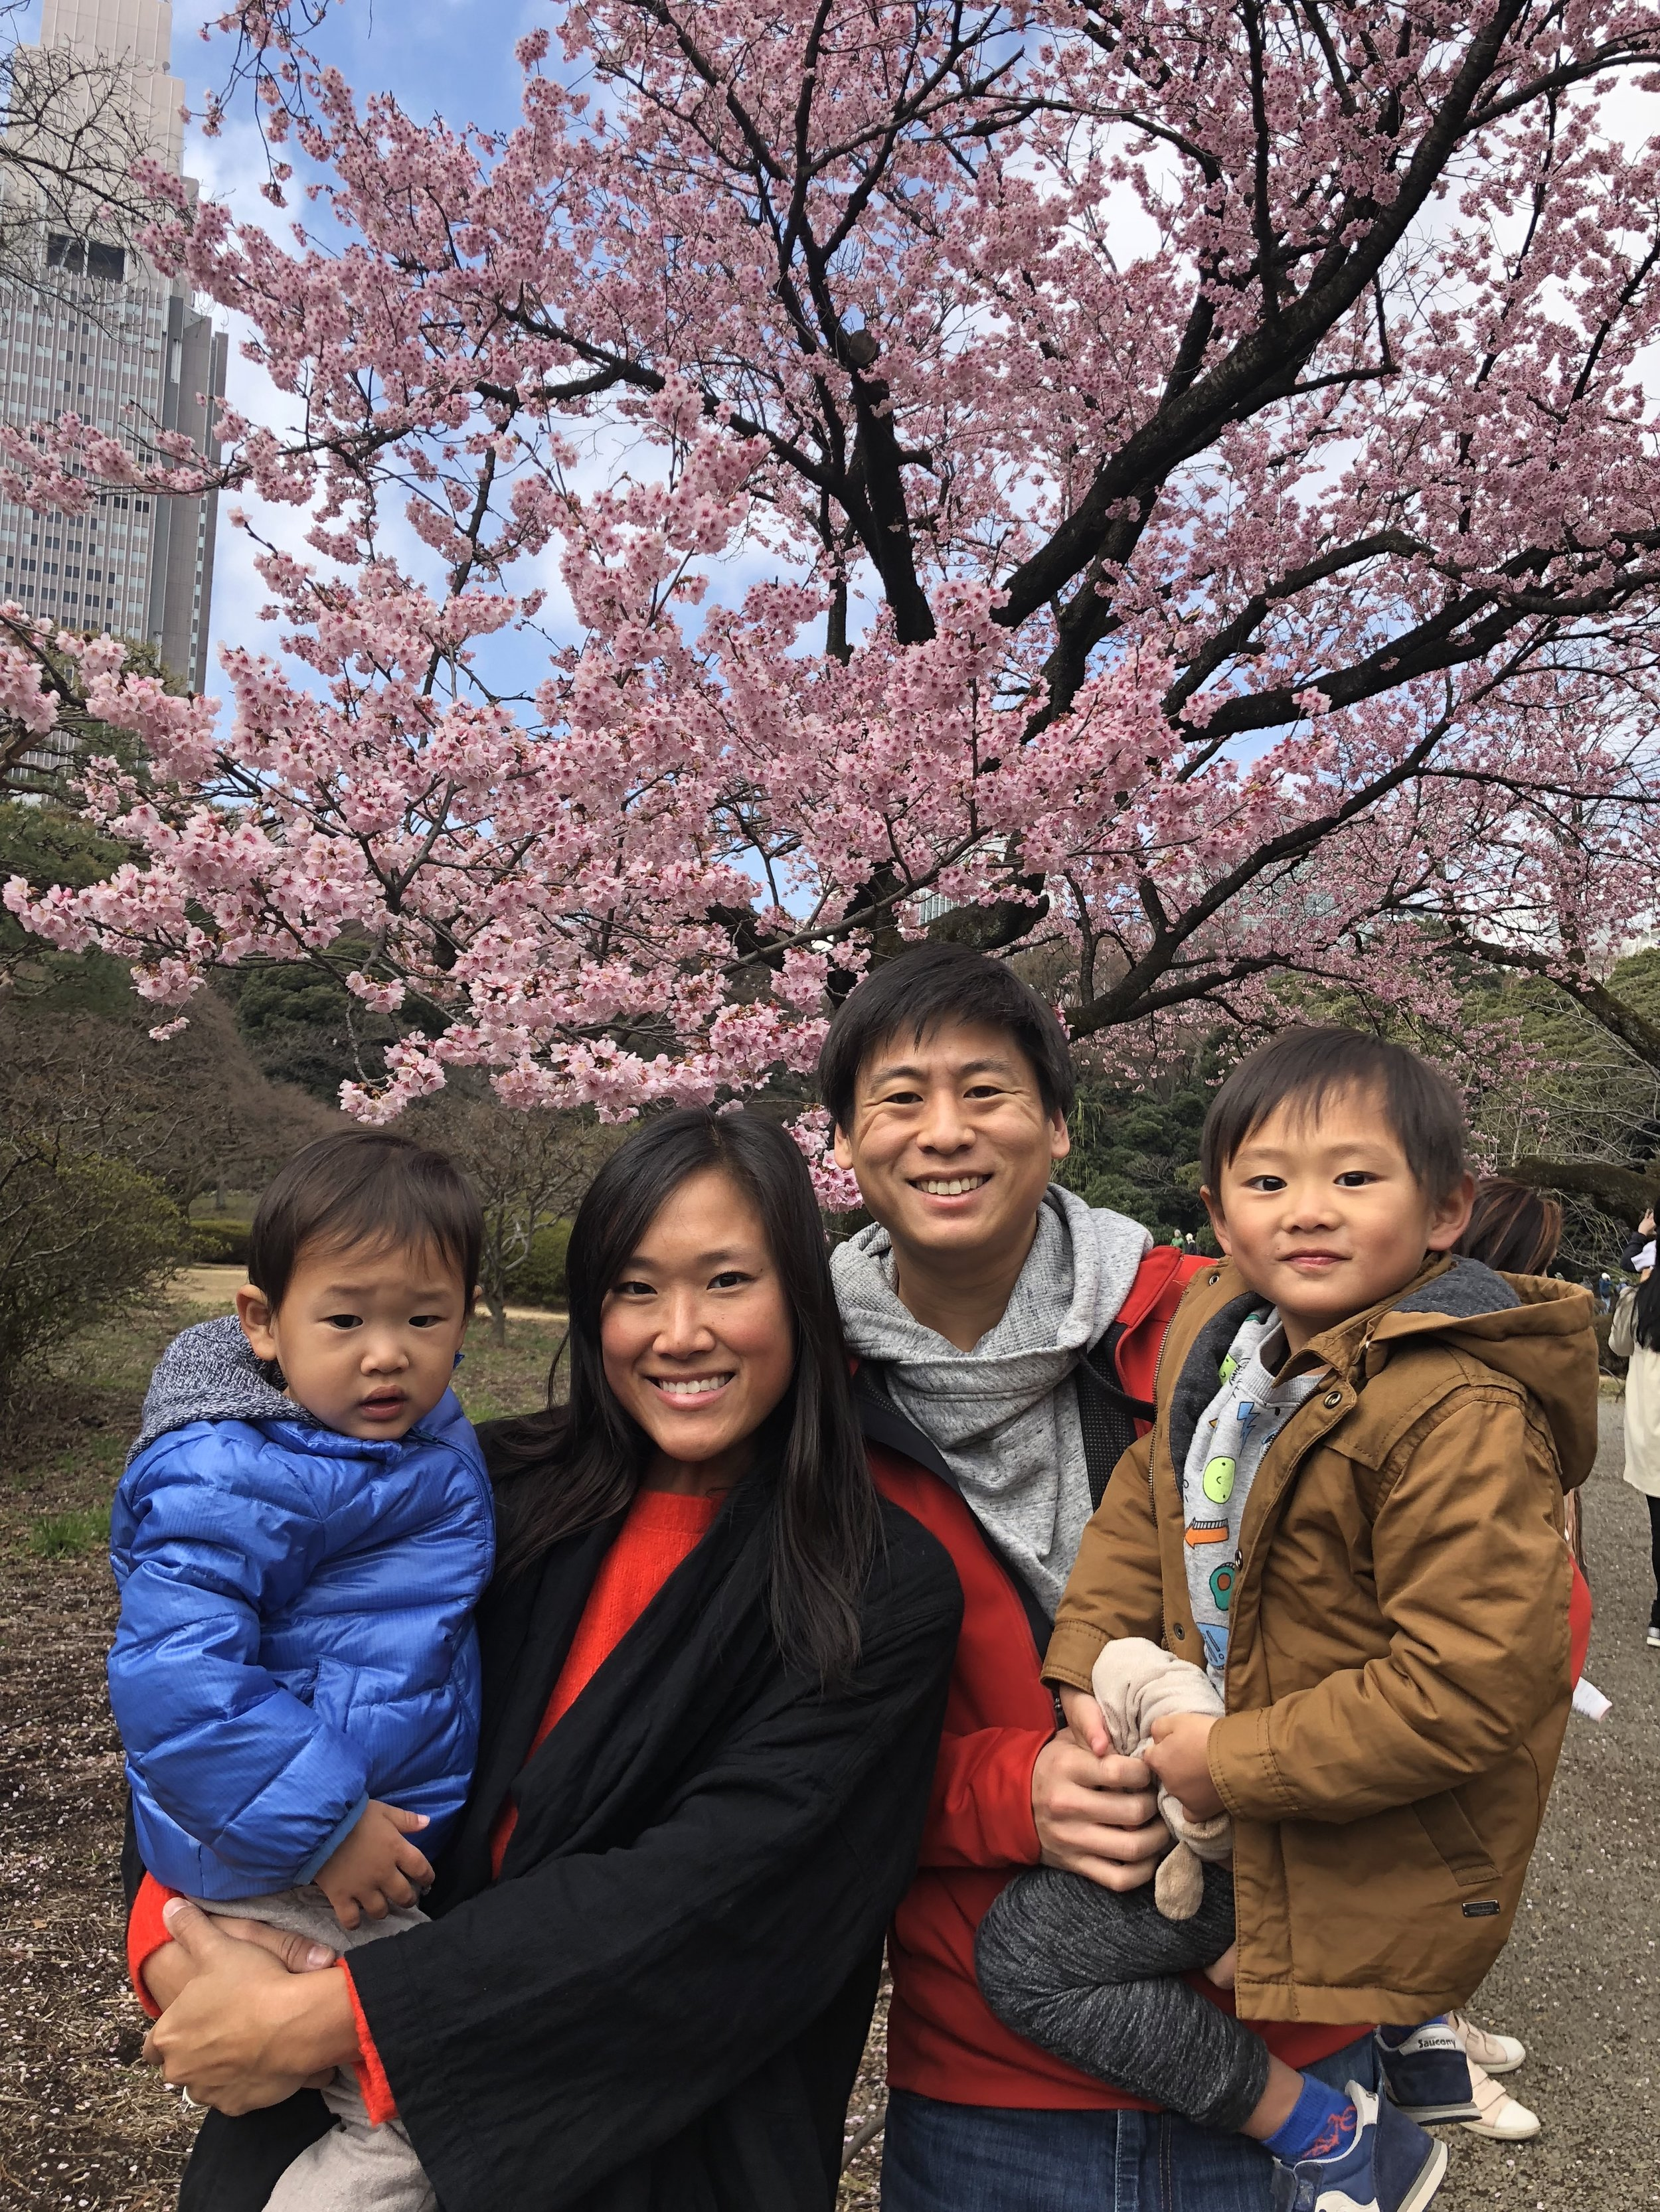 Nailed it: The Tsous get a mandatory shot in front of the cherry blossoms in central Tokyo.